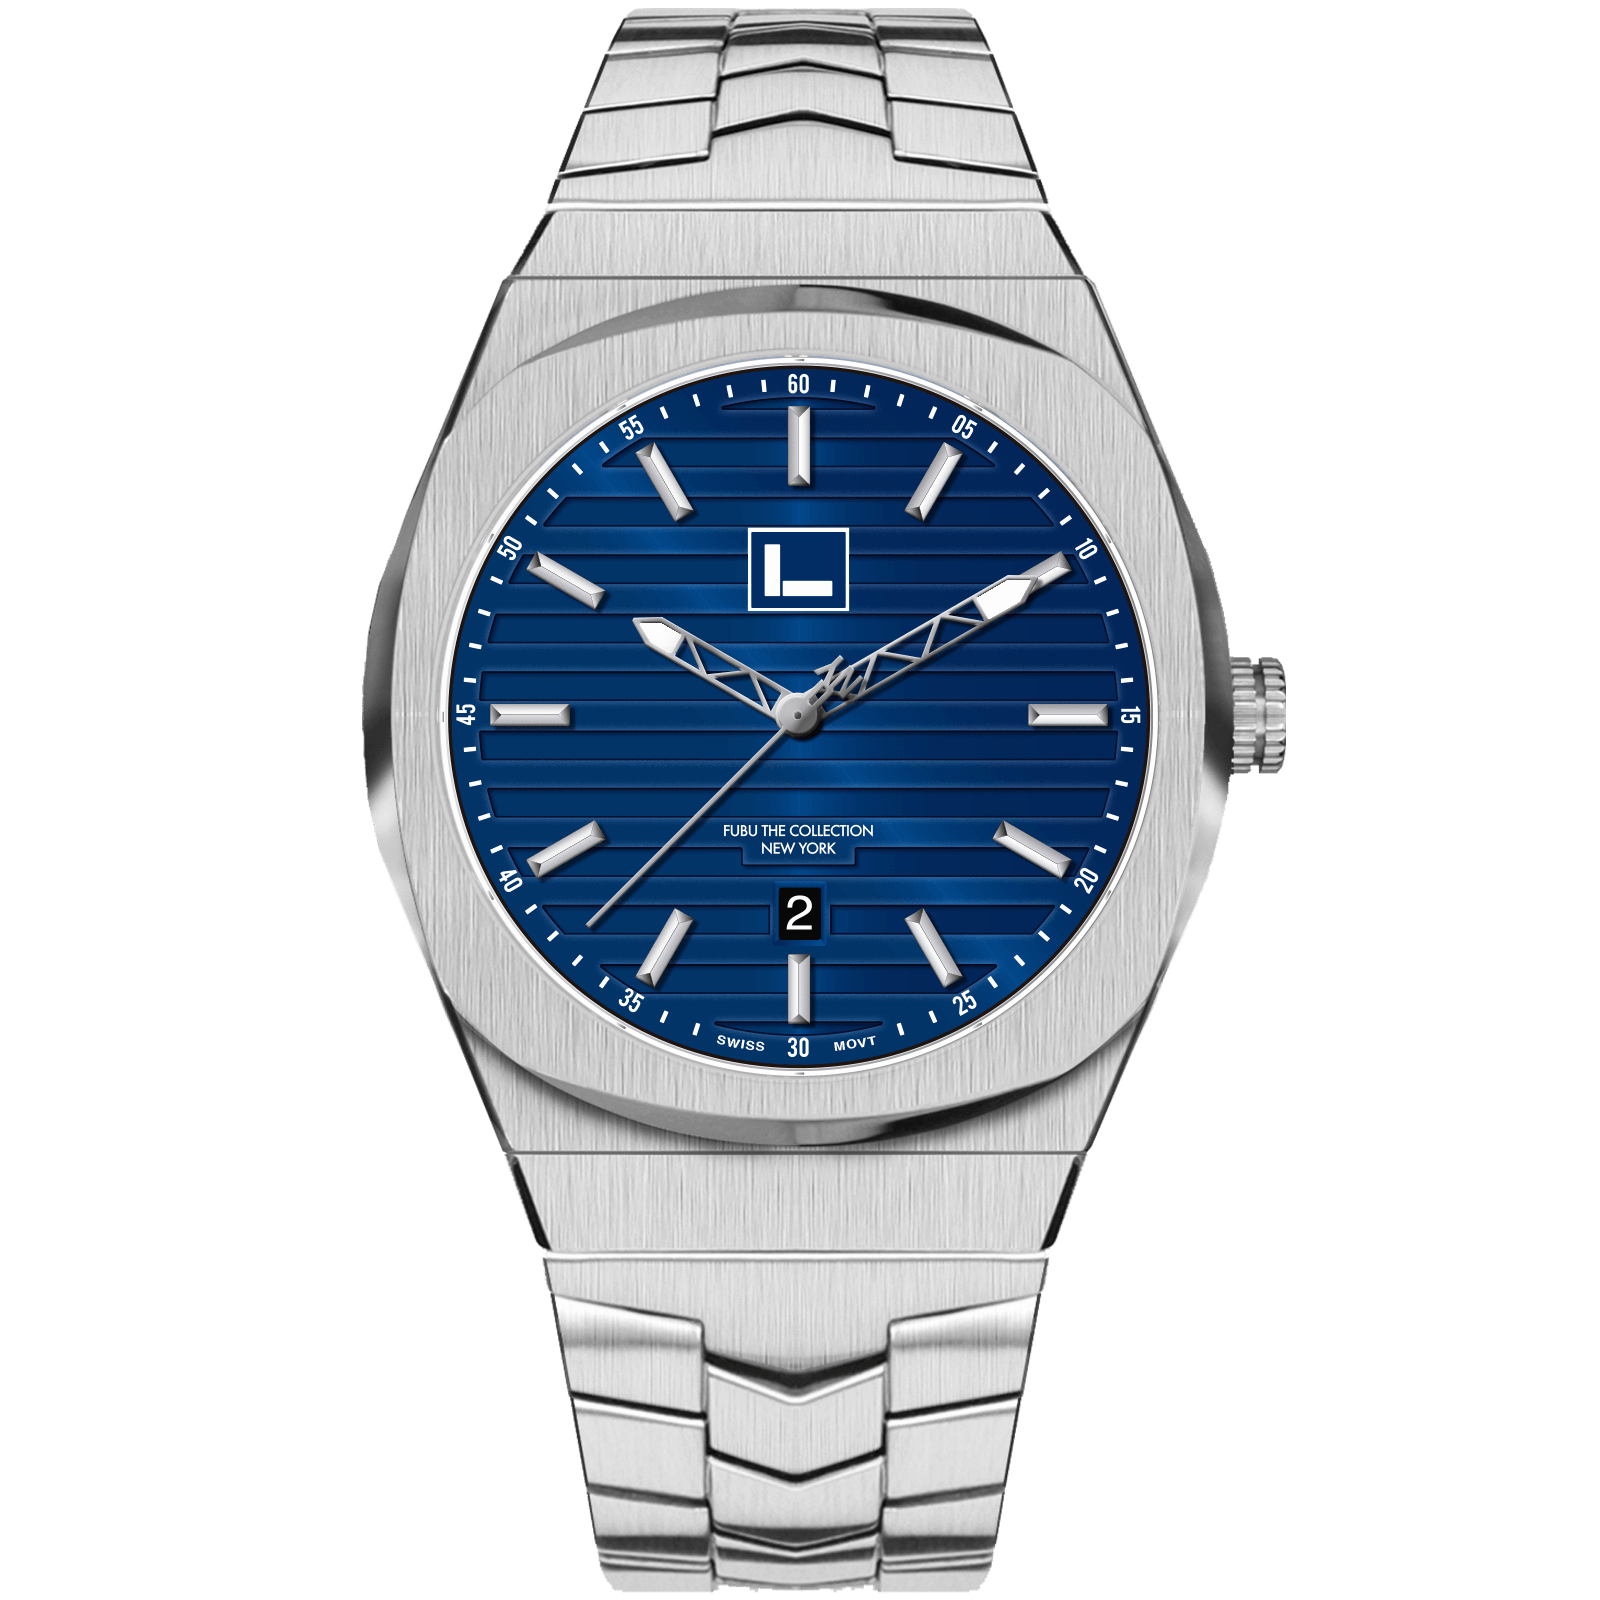 Empire State Odell - FUBU Watch Swiss Made Movement, Sapphire Crystal, Quick Release System, 10ATM water resistance. 24 Month Warranty. Lifestyle Affordable Timepieces